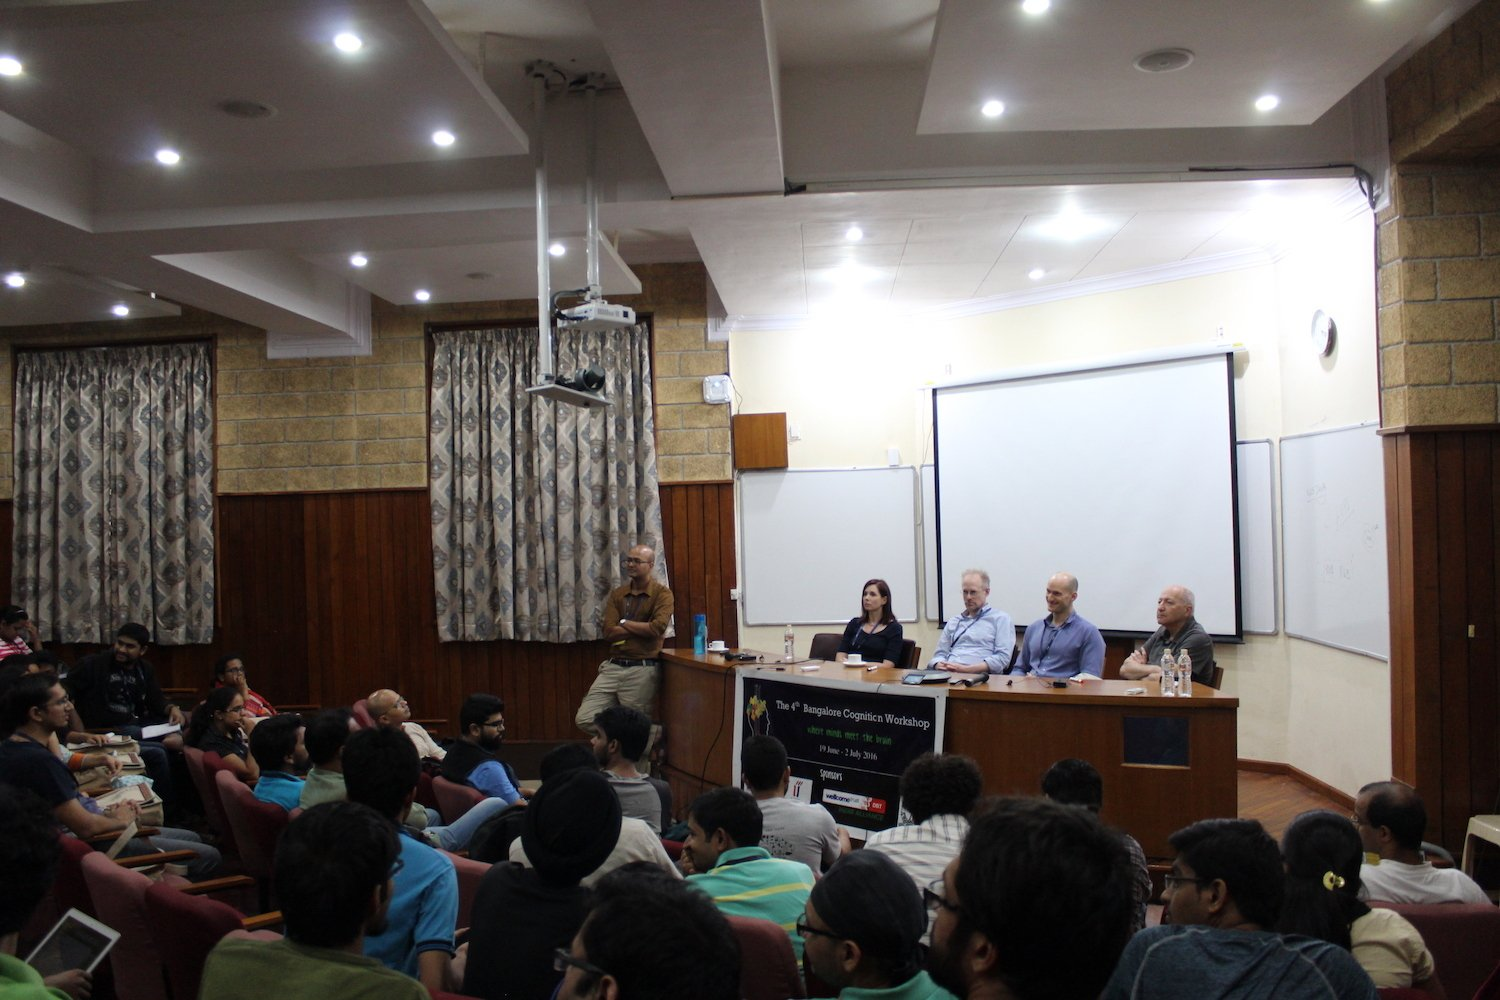 From the workshop: a panel discussion on vision